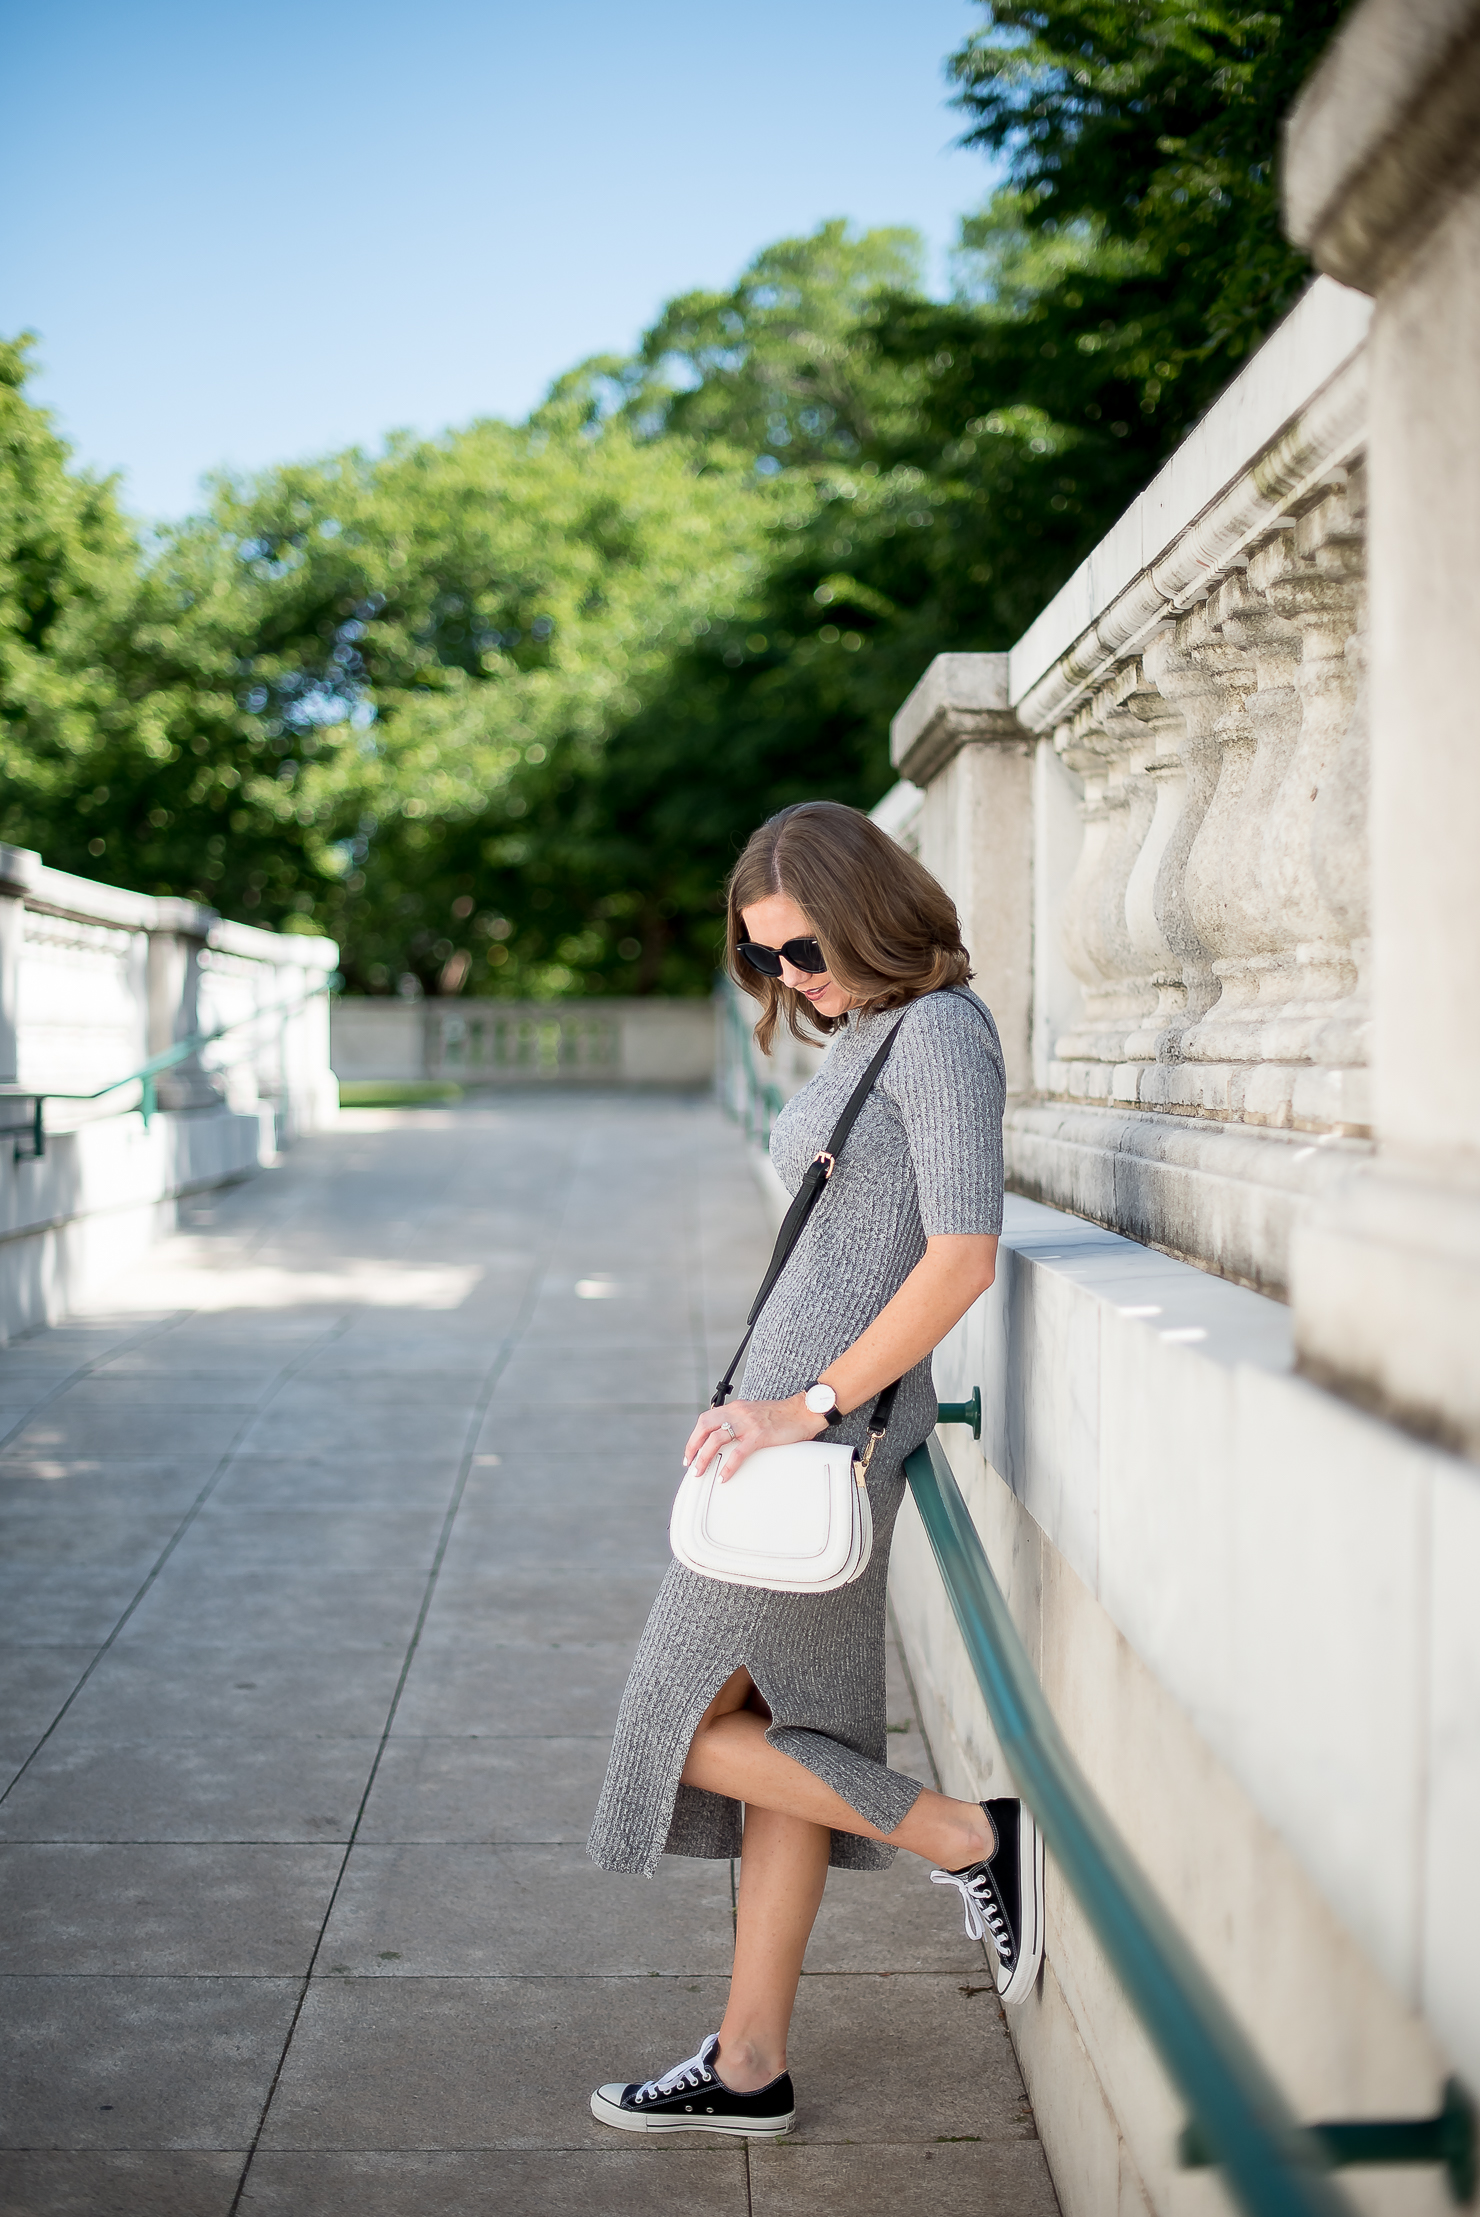 hm-grey-cotton-ribbed-midi-dress-black-converse-white-sole-society-crossbody-chicago-field-museum